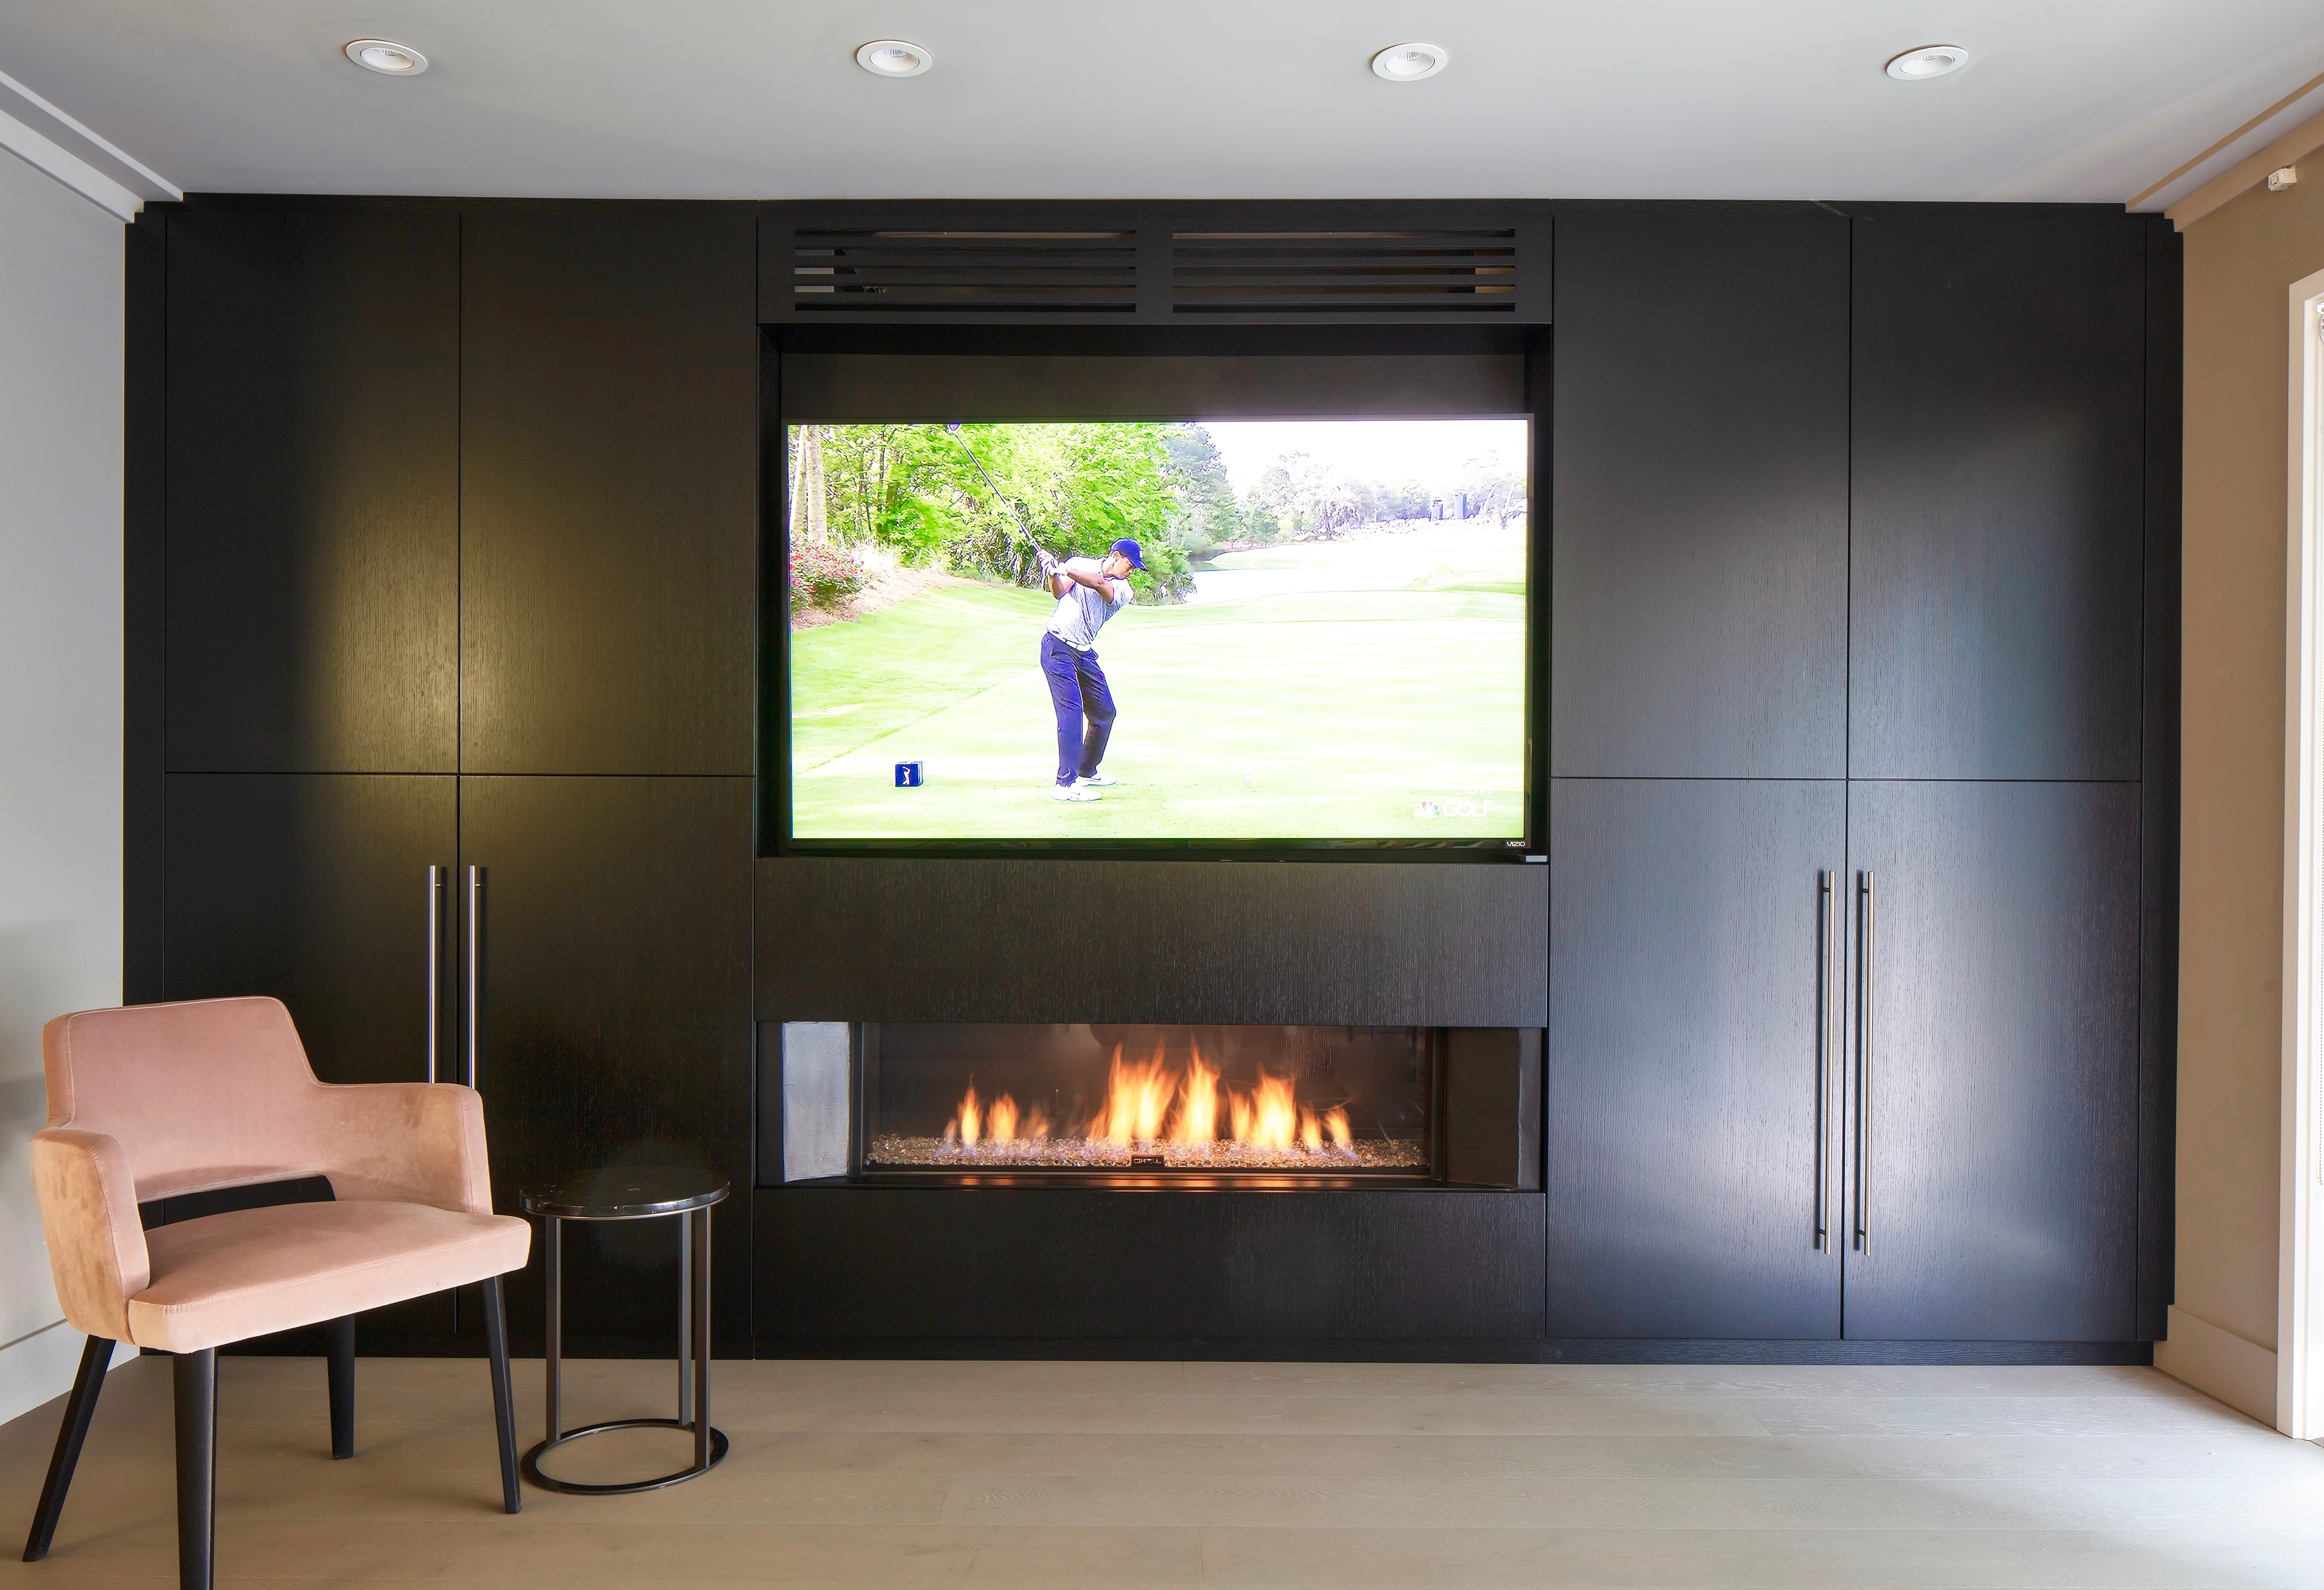 Fireplace and TV combination